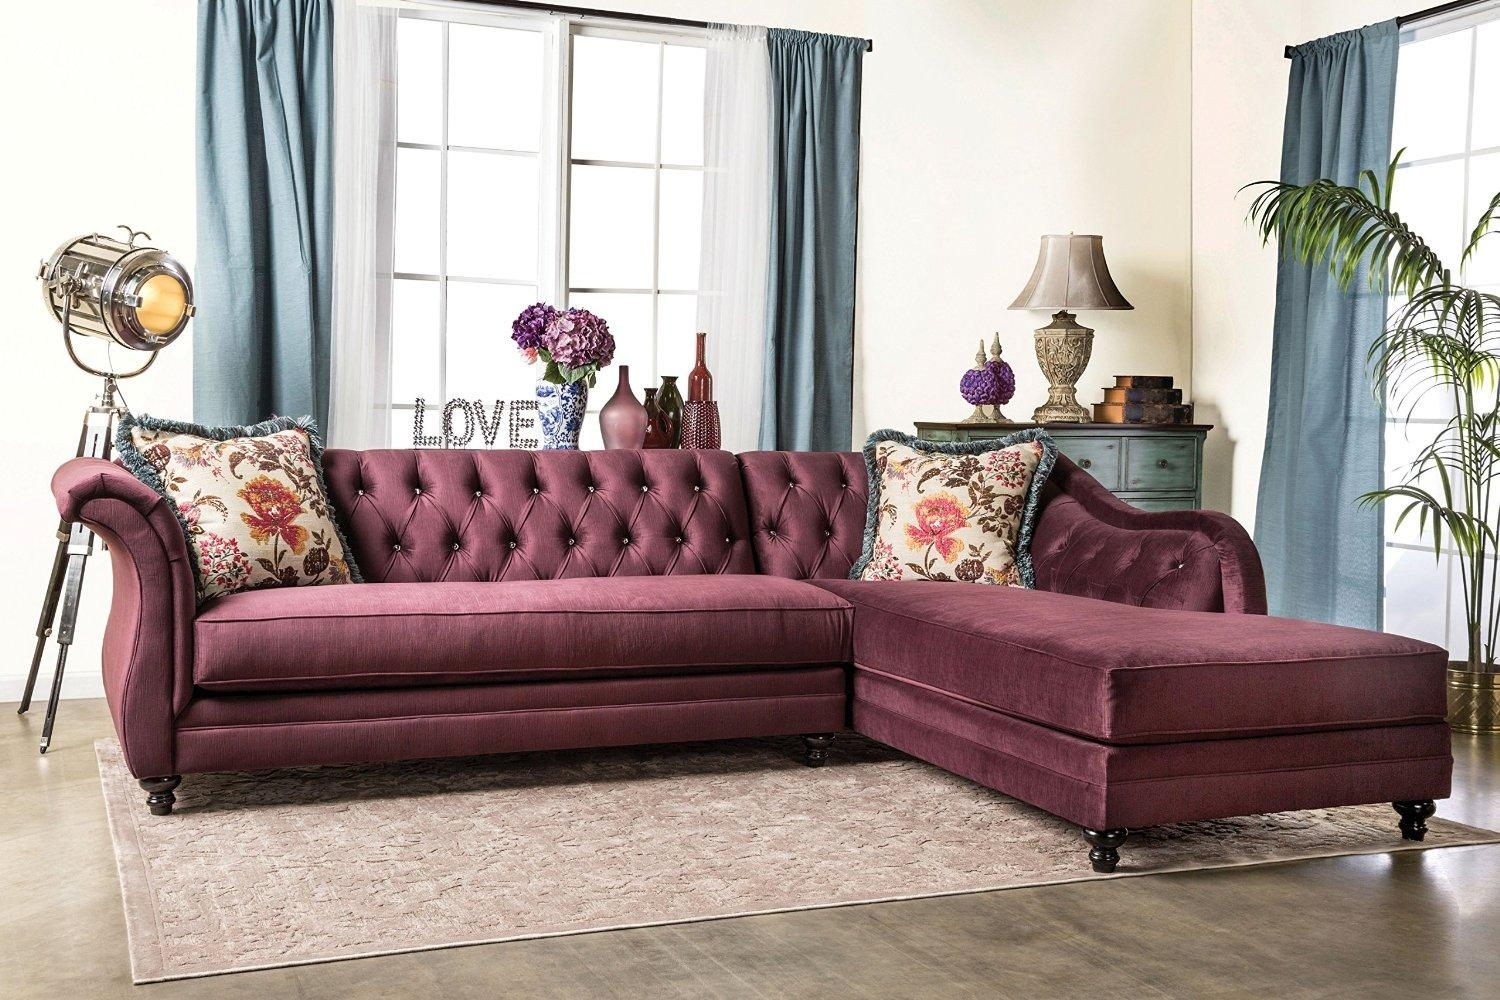 25 Best Chesterfield Sofas To Buy In 2017 Throughout Chesterfield Sofas (View 18 of 20)